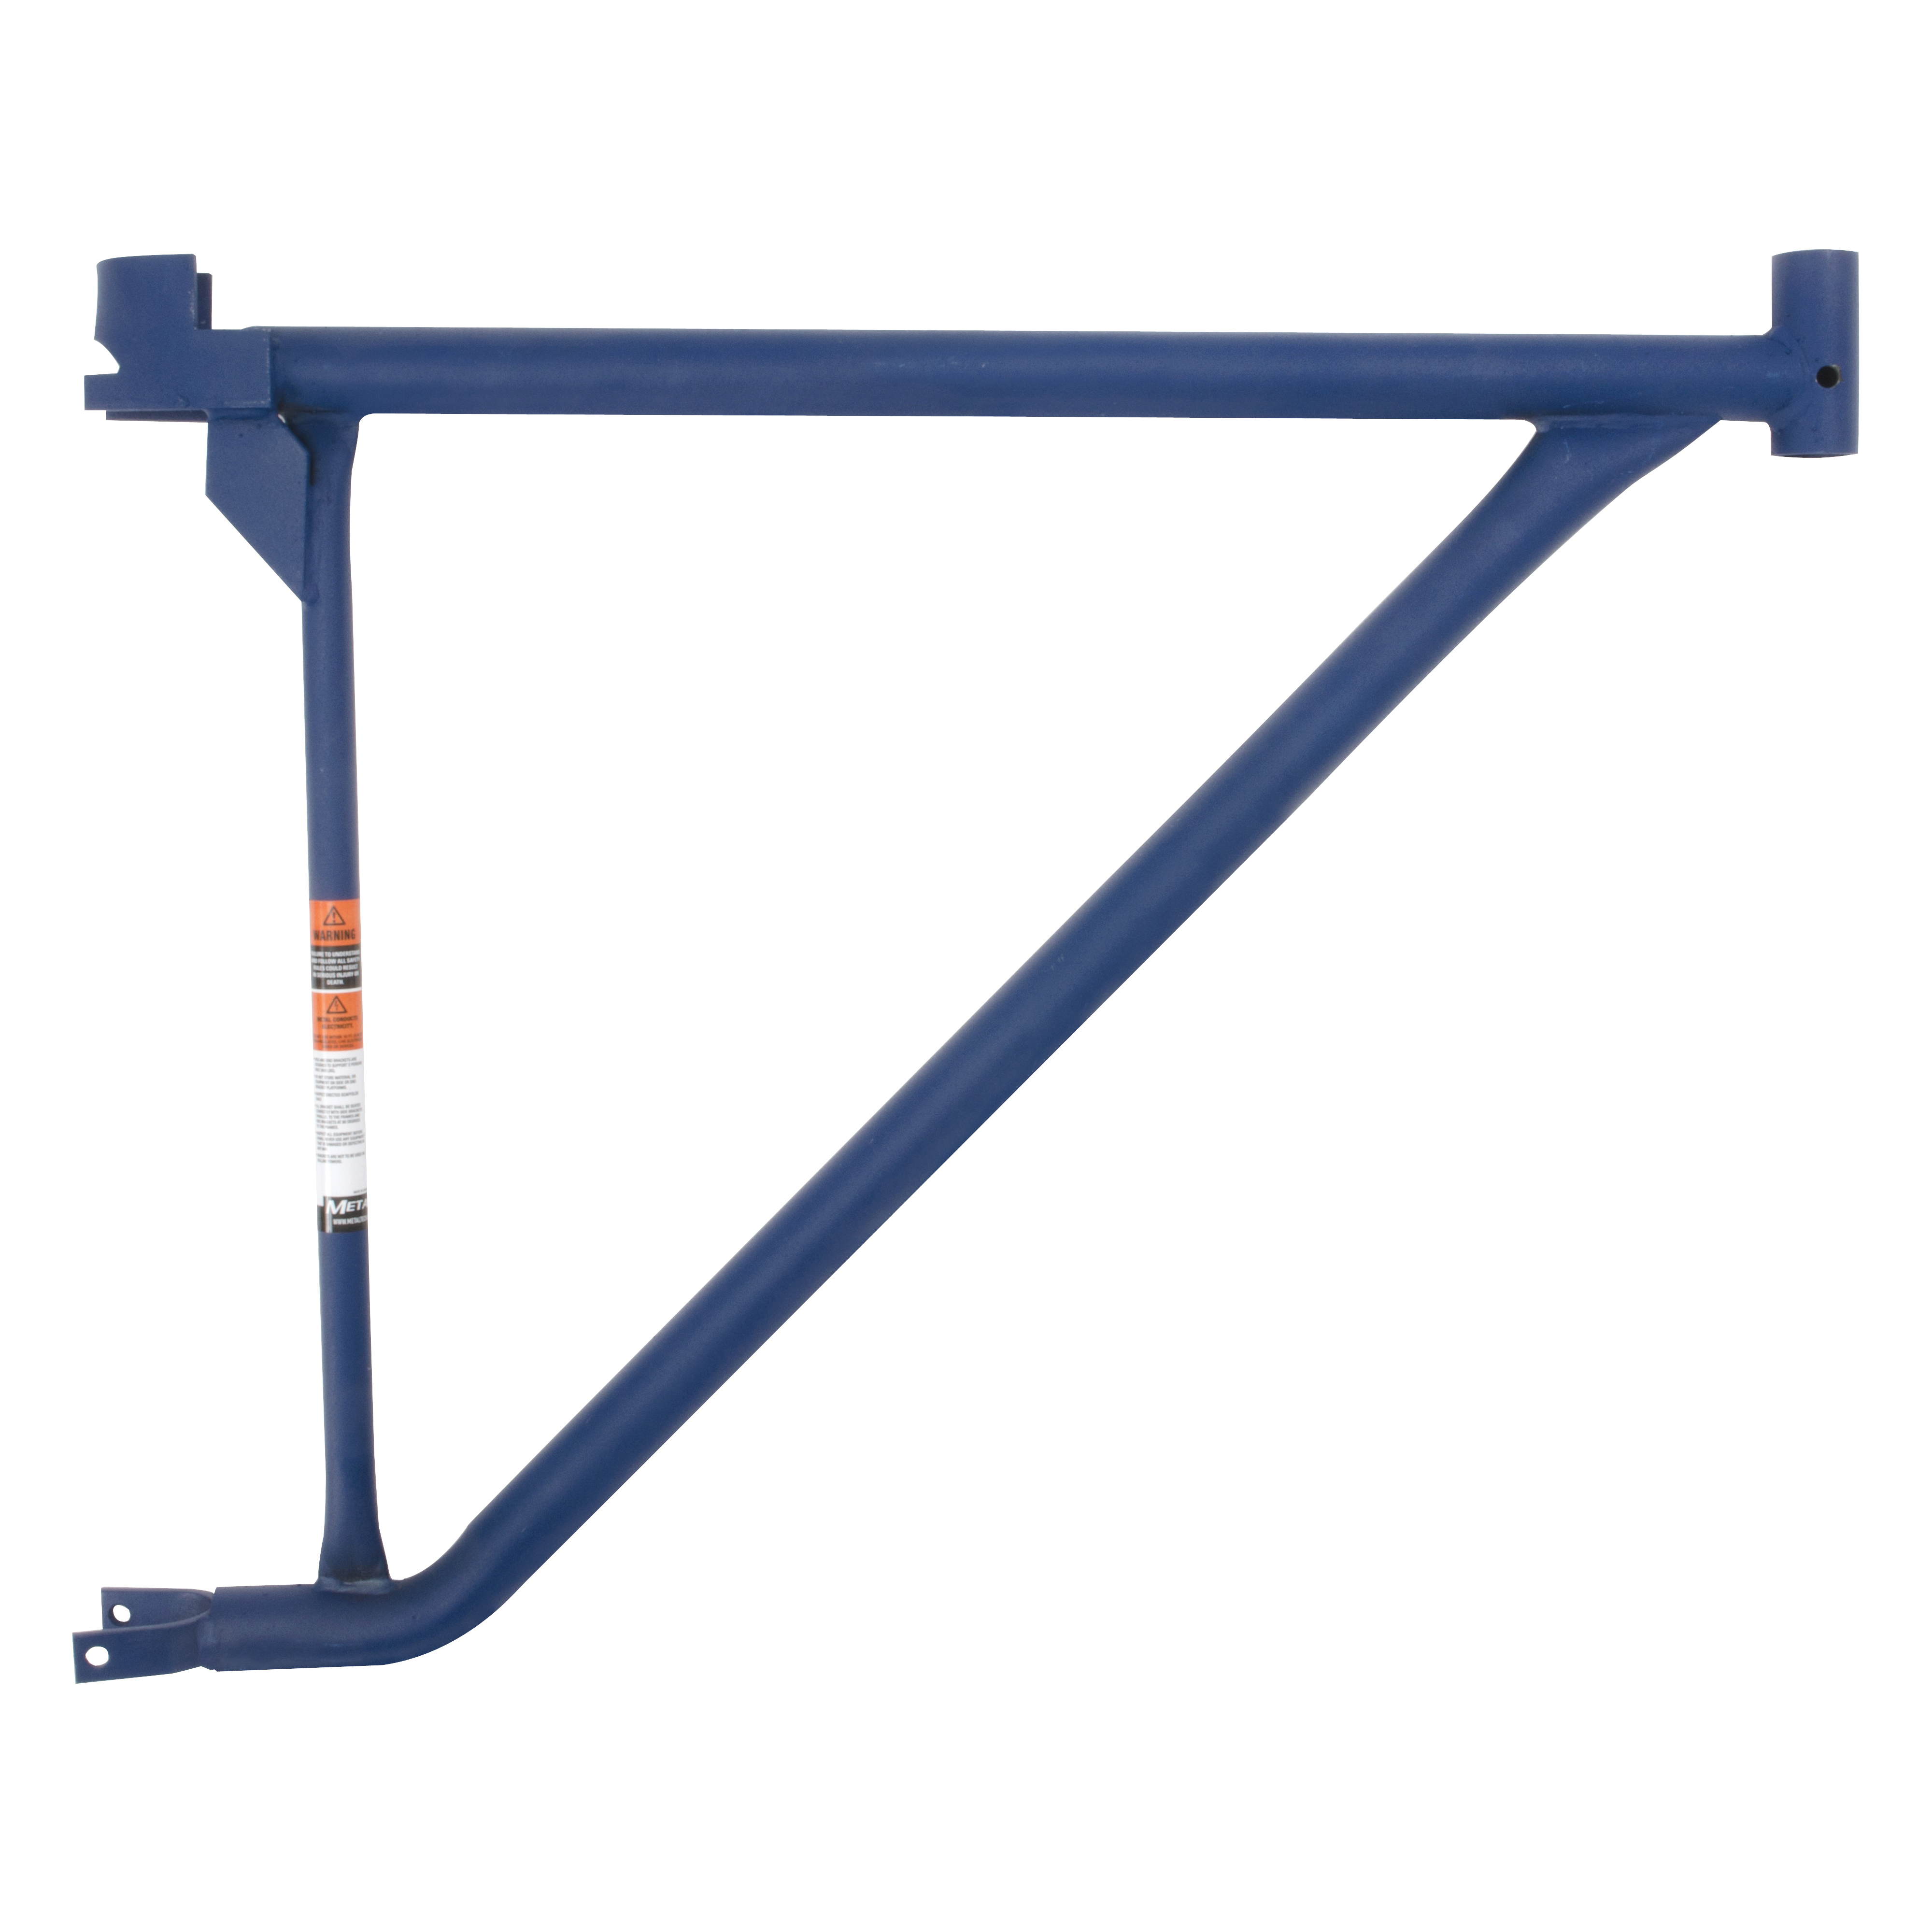 Picture of METALTECH M-MS30 Bracket Side, Powder-Coated